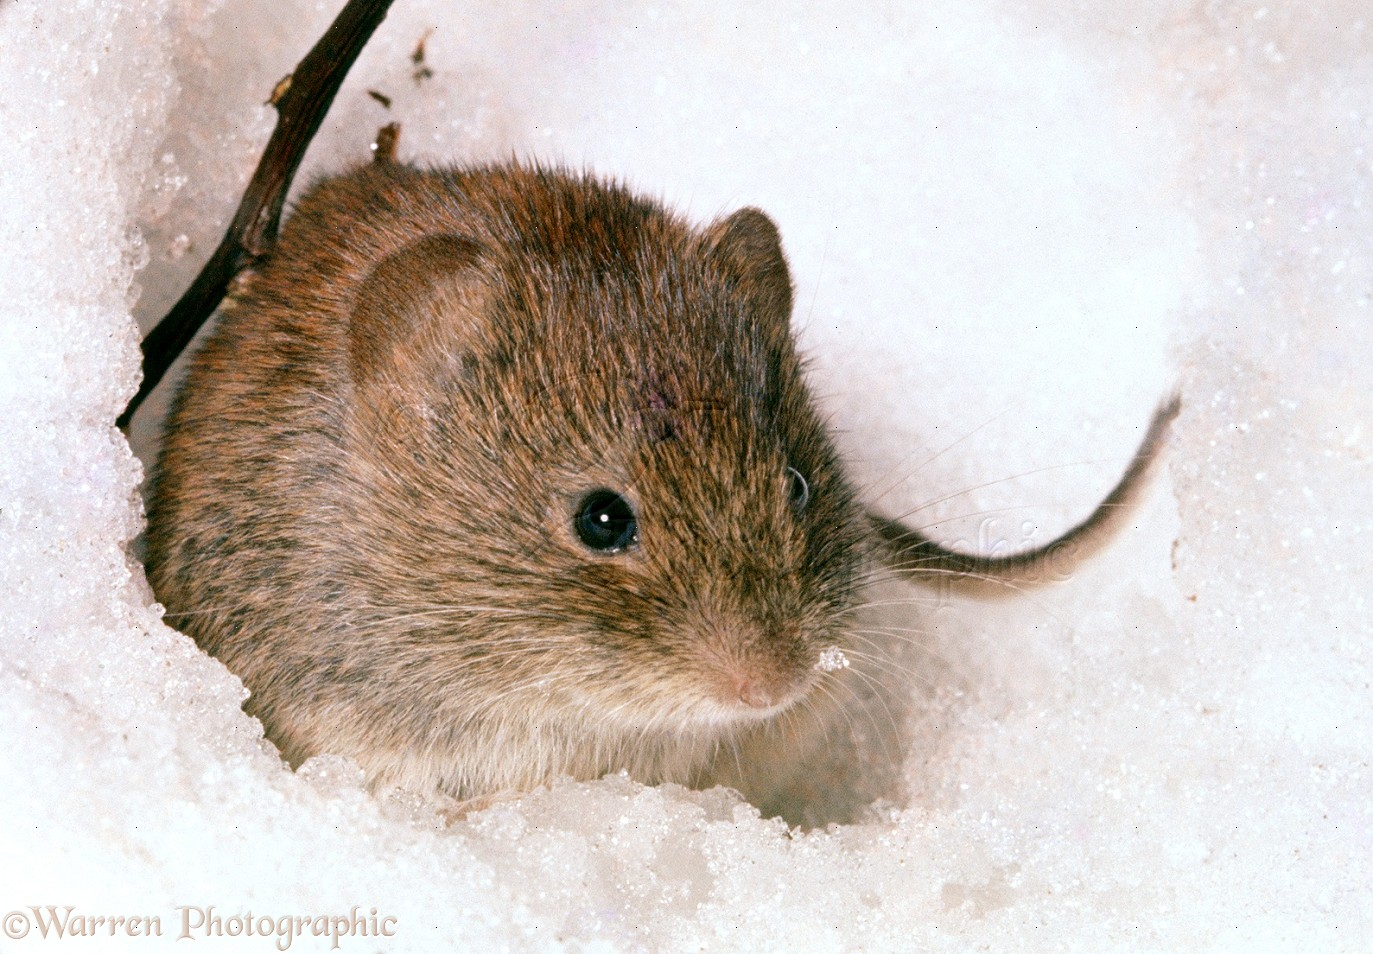 wp07200 bank vole clethrionomys glareolus in snow